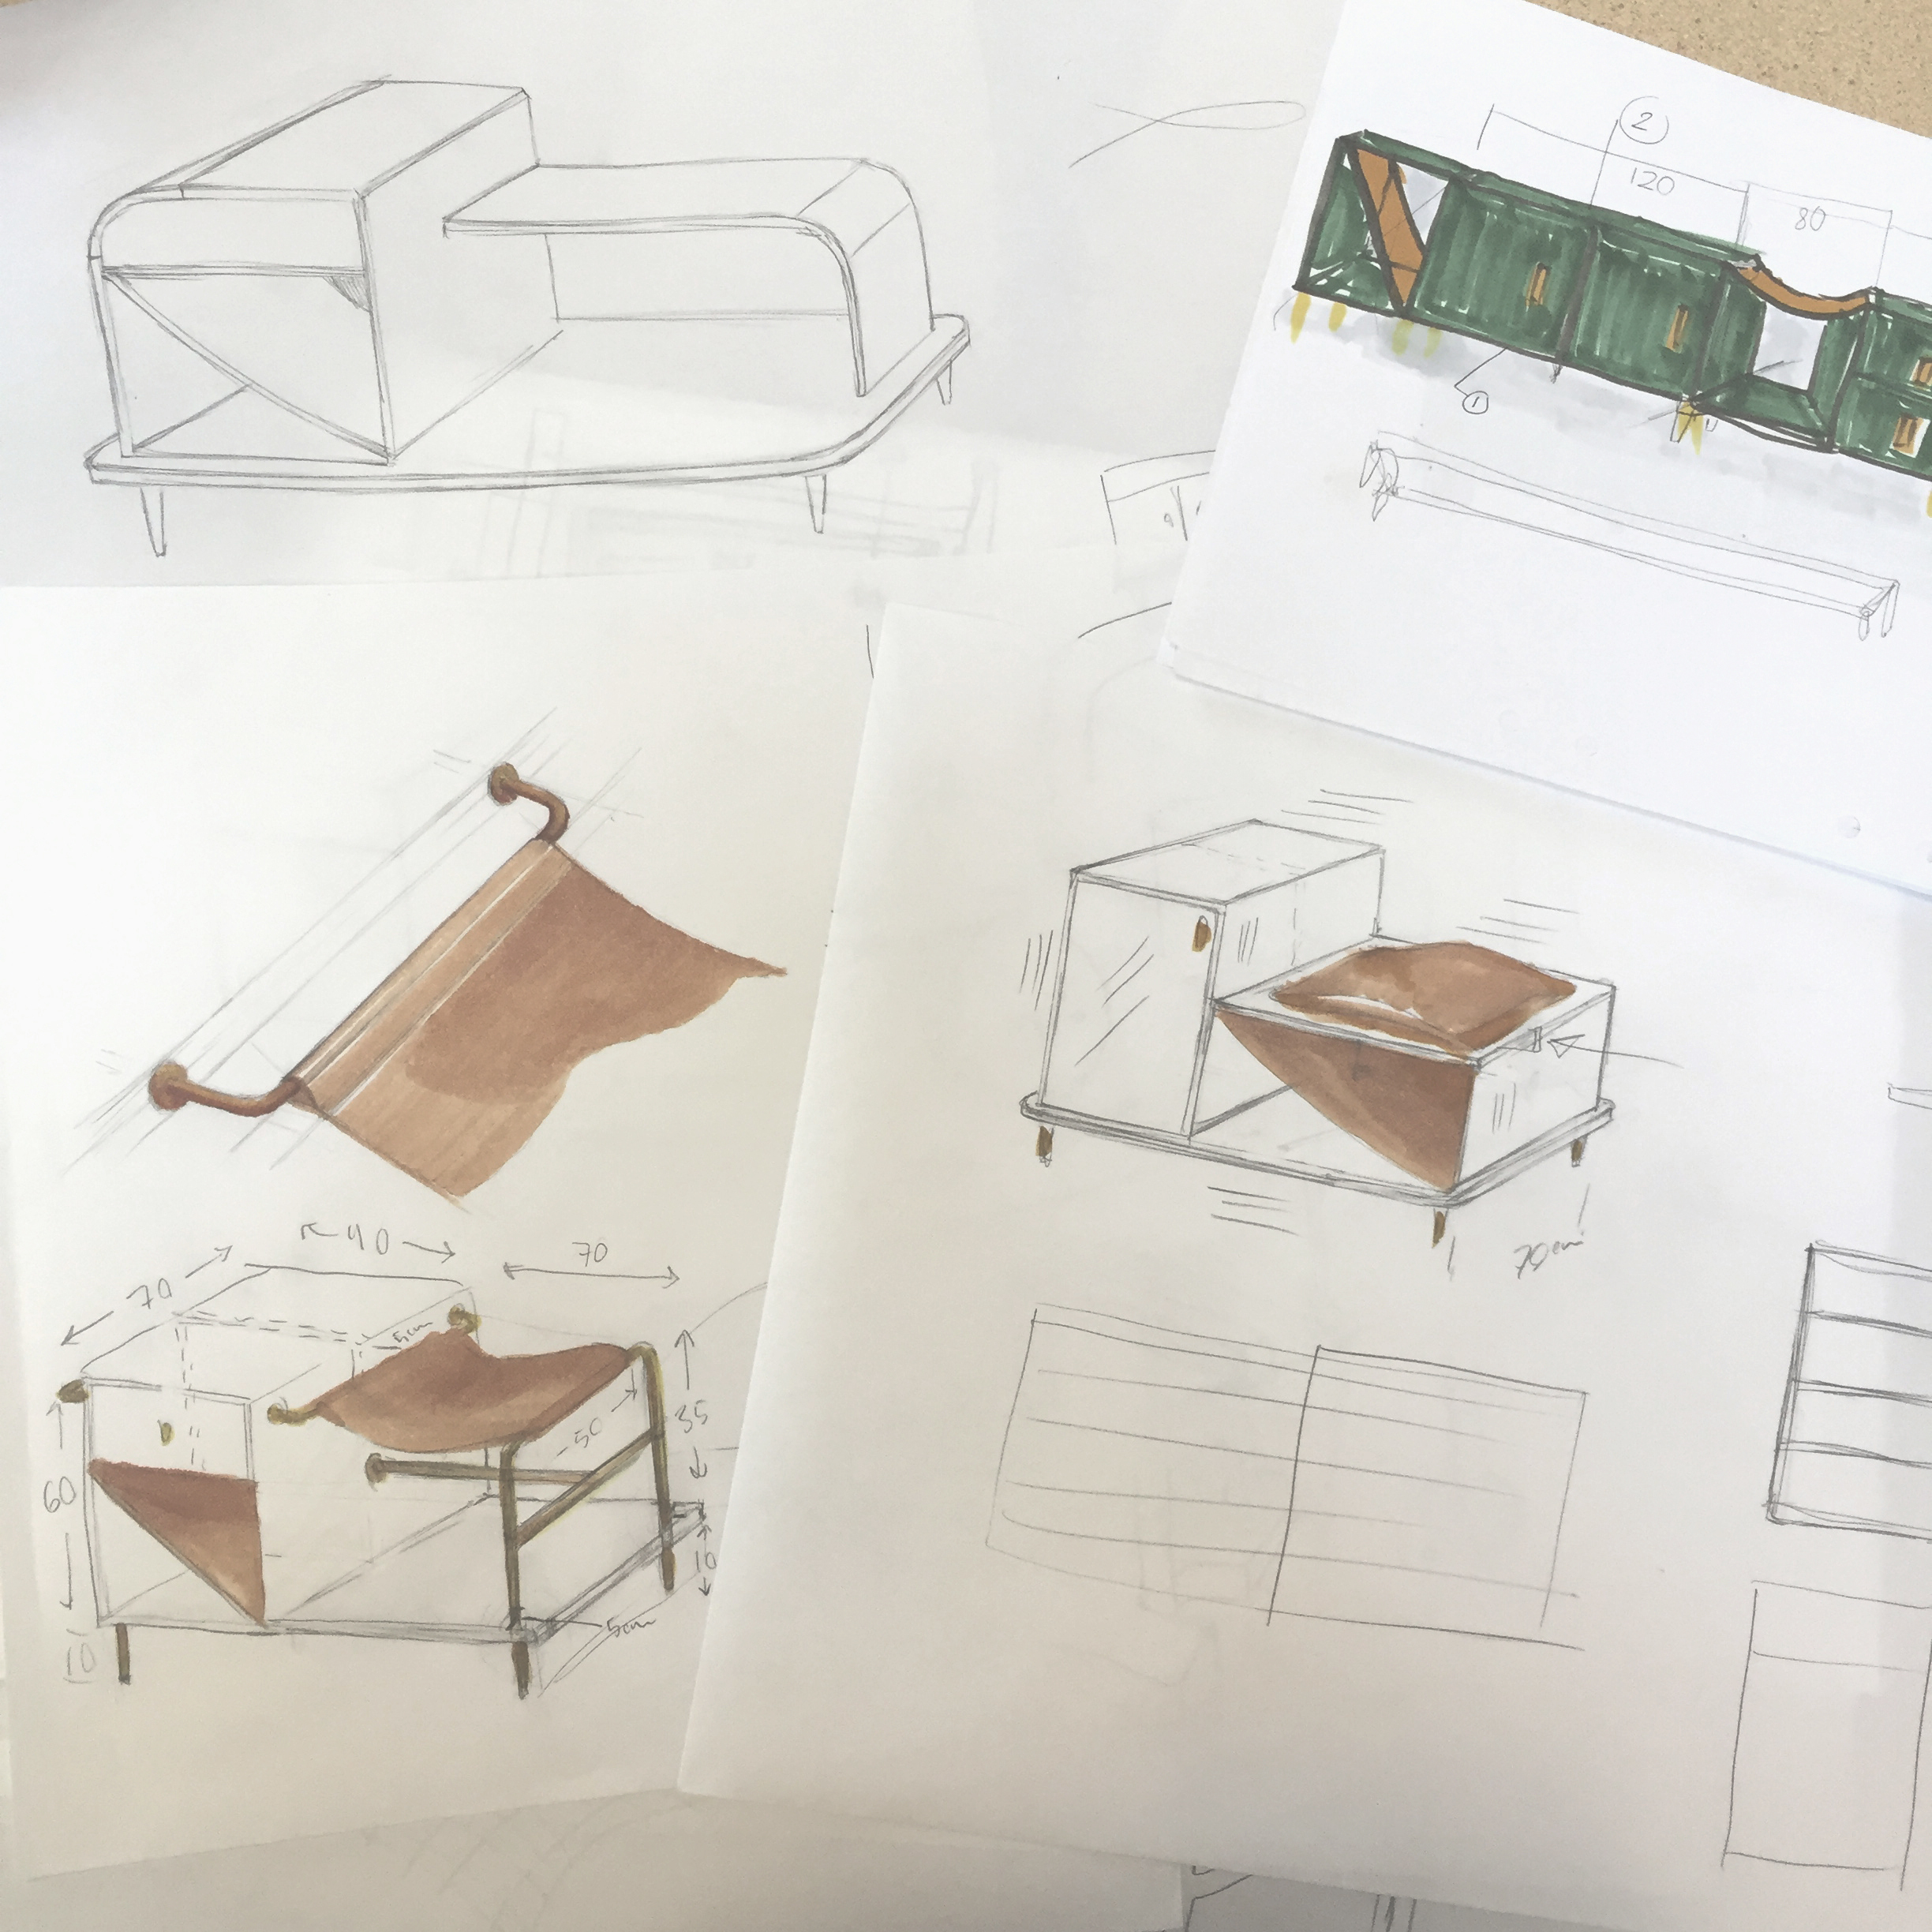 Combination furniture sketches, by Sebastian Galo